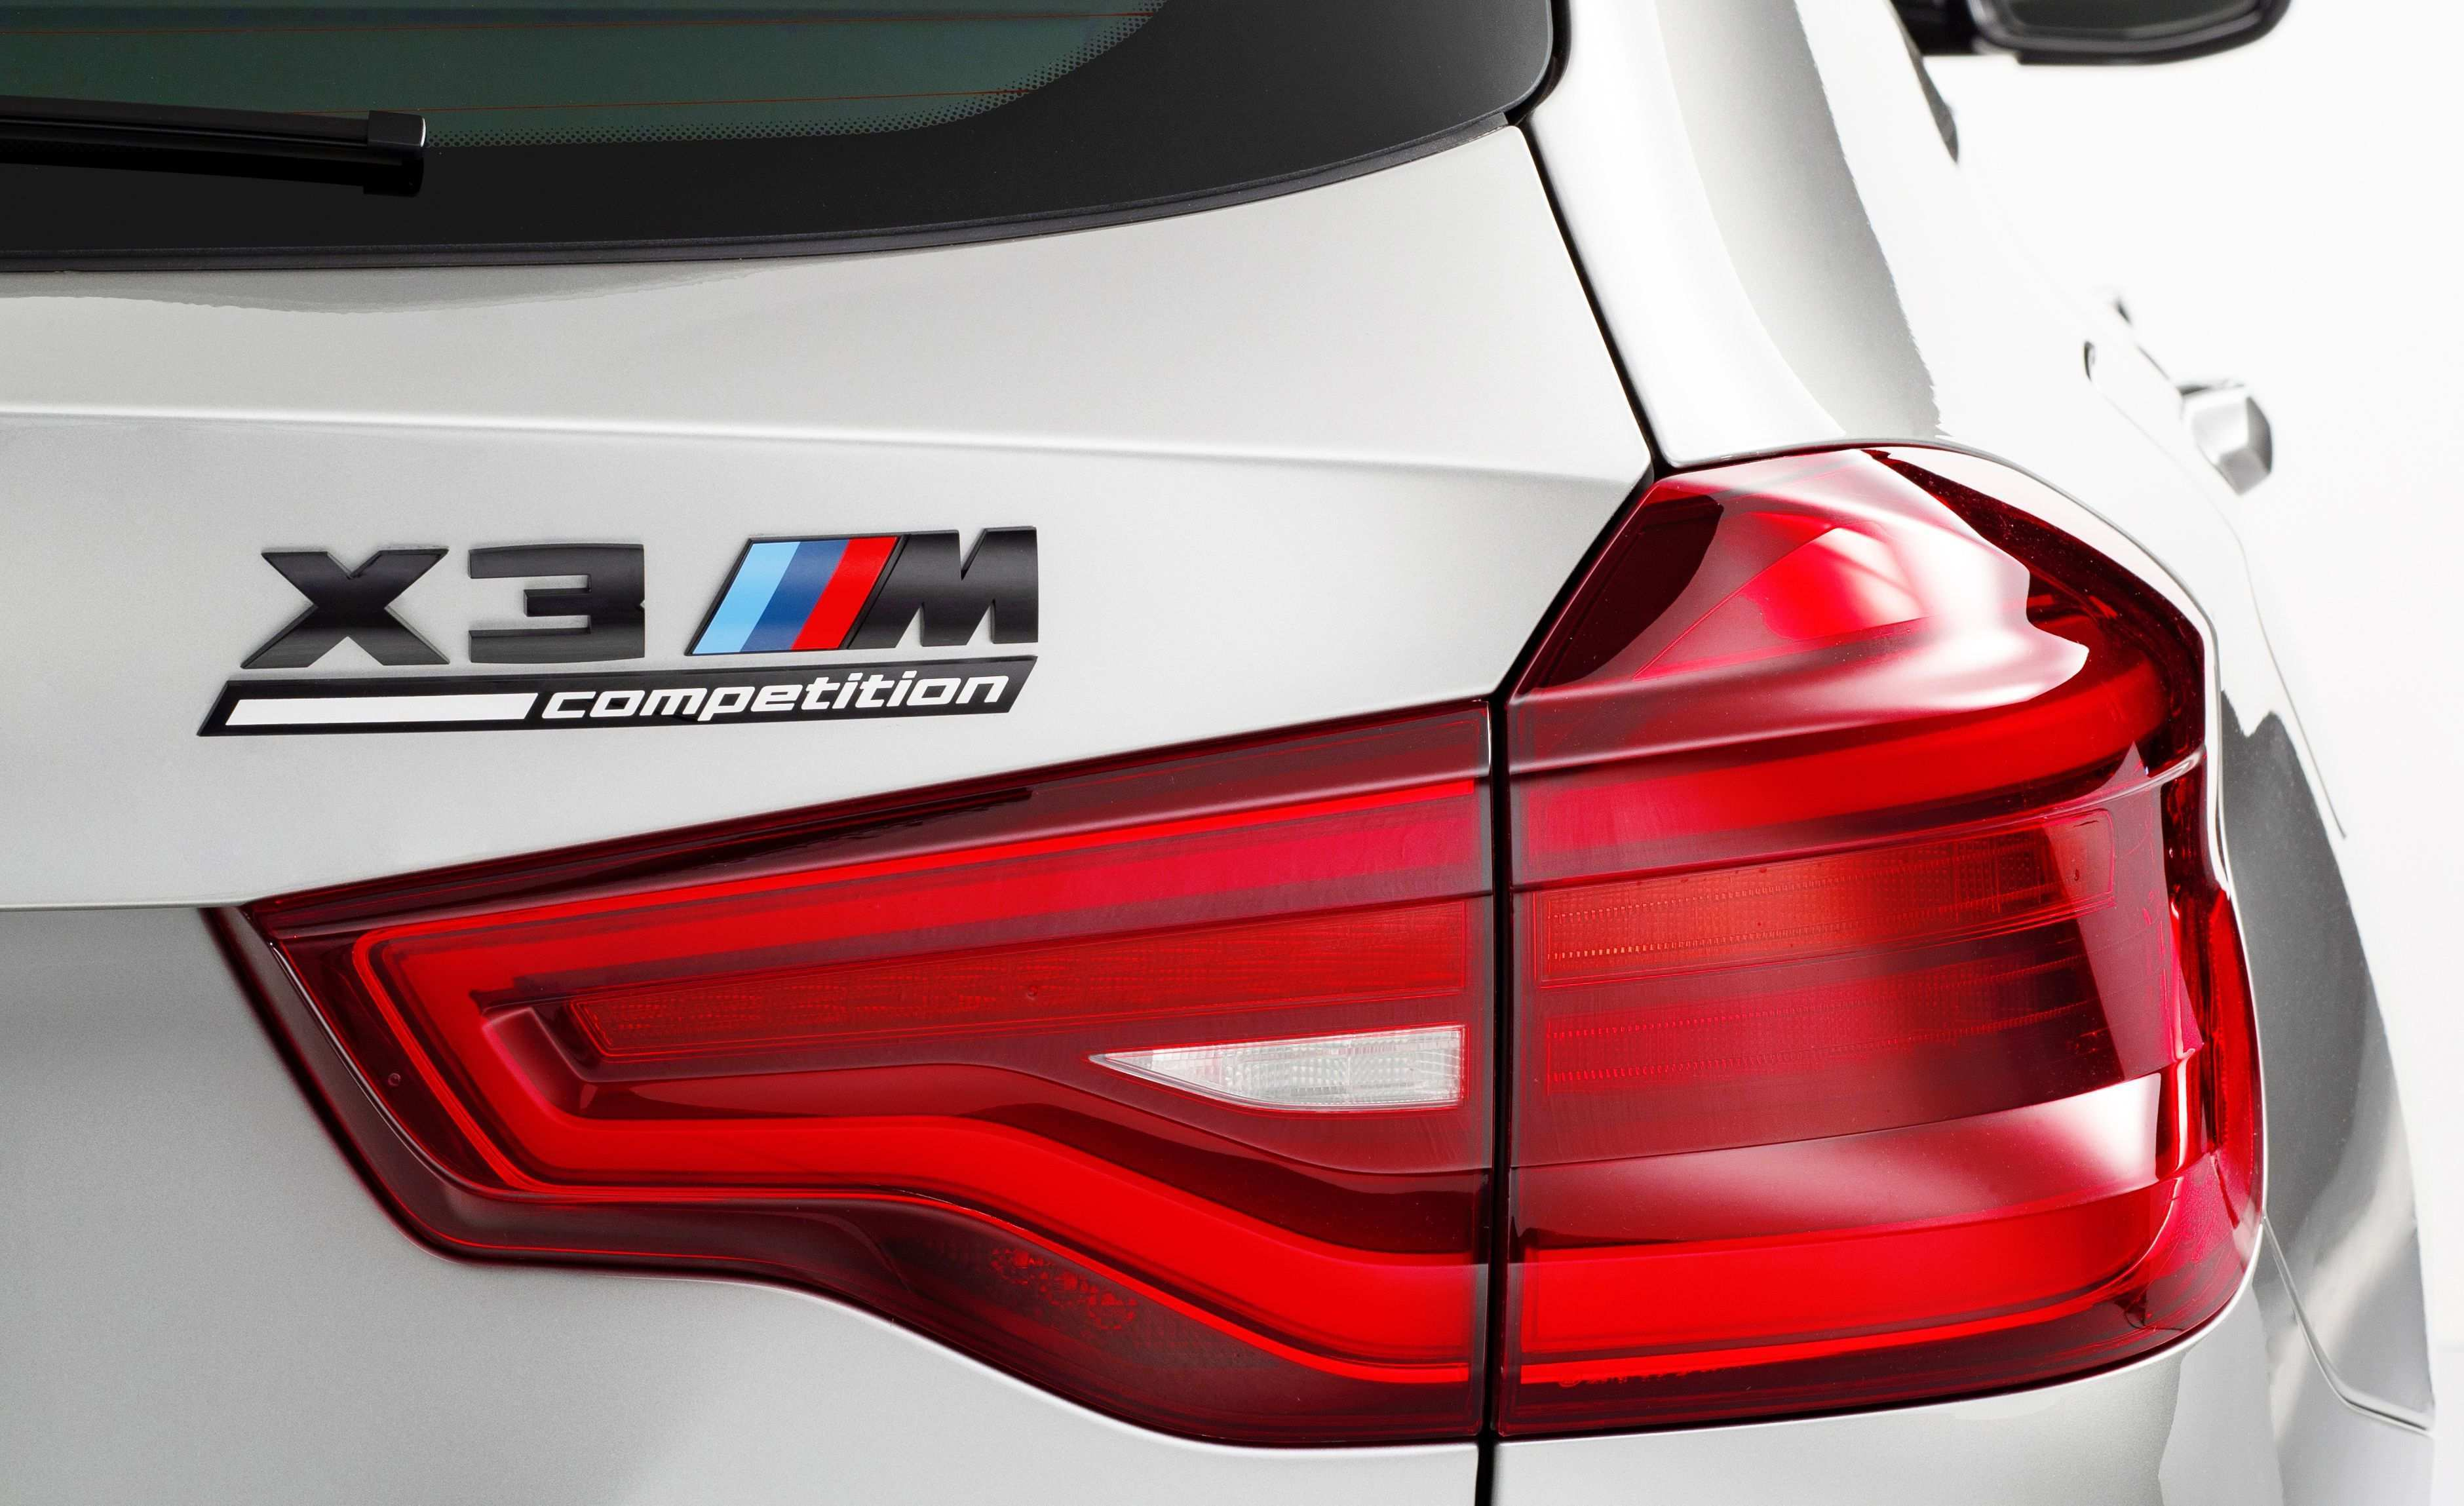 69 Great 2020 BMW X3M Ordering Guide Photos by 2020 BMW X3M Ordering Guide